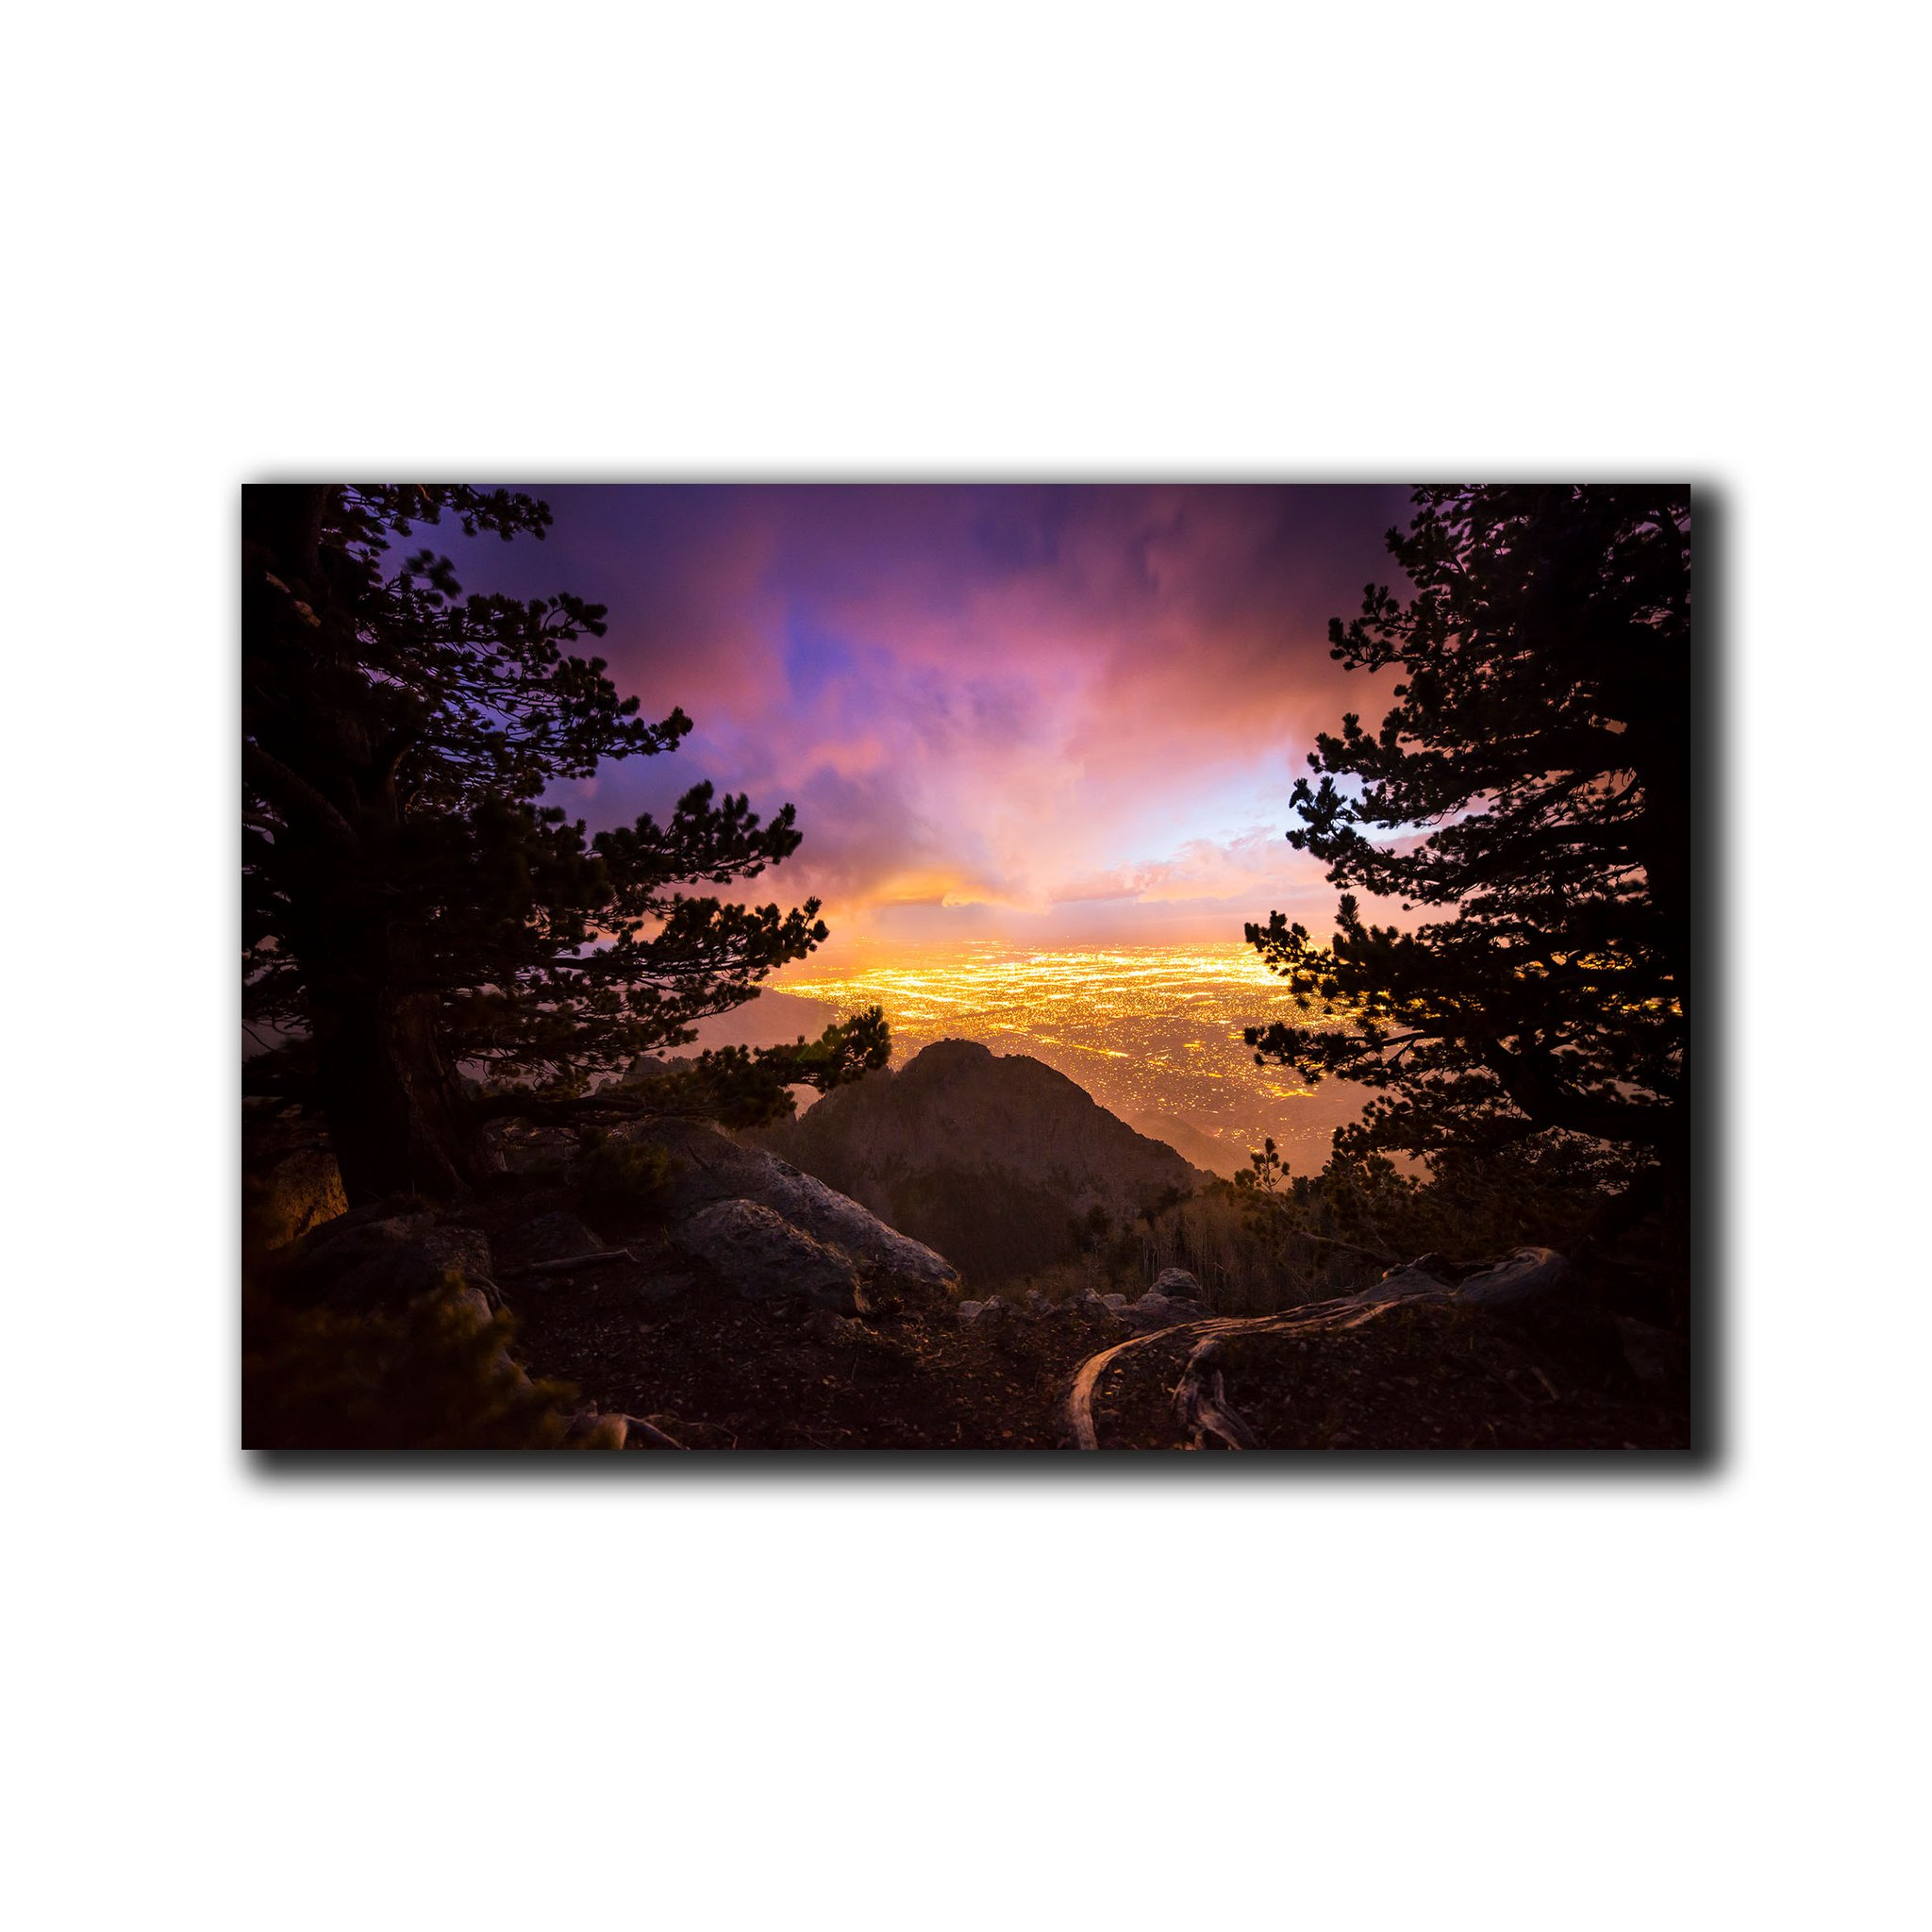 Enter to win a 20 x 30 Print Canvas of Sunset Over ABQ by Knate Myers. A $300 Value. Giveaway Image